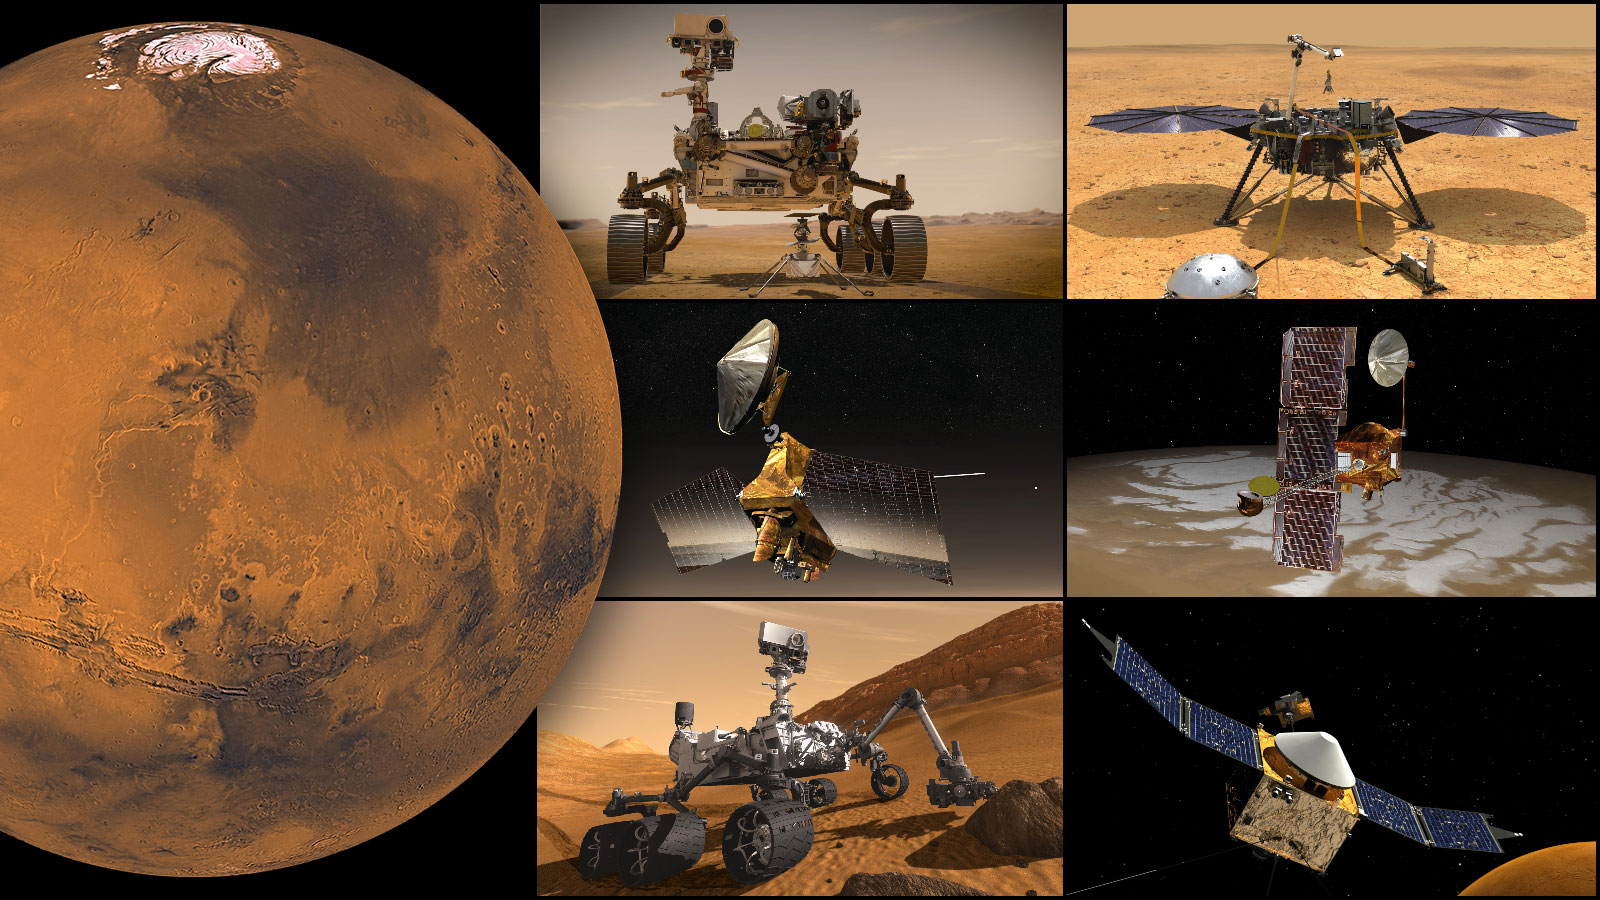 NASA's Mars Fleet Lies Low with Sun Between Earth and Red Planet